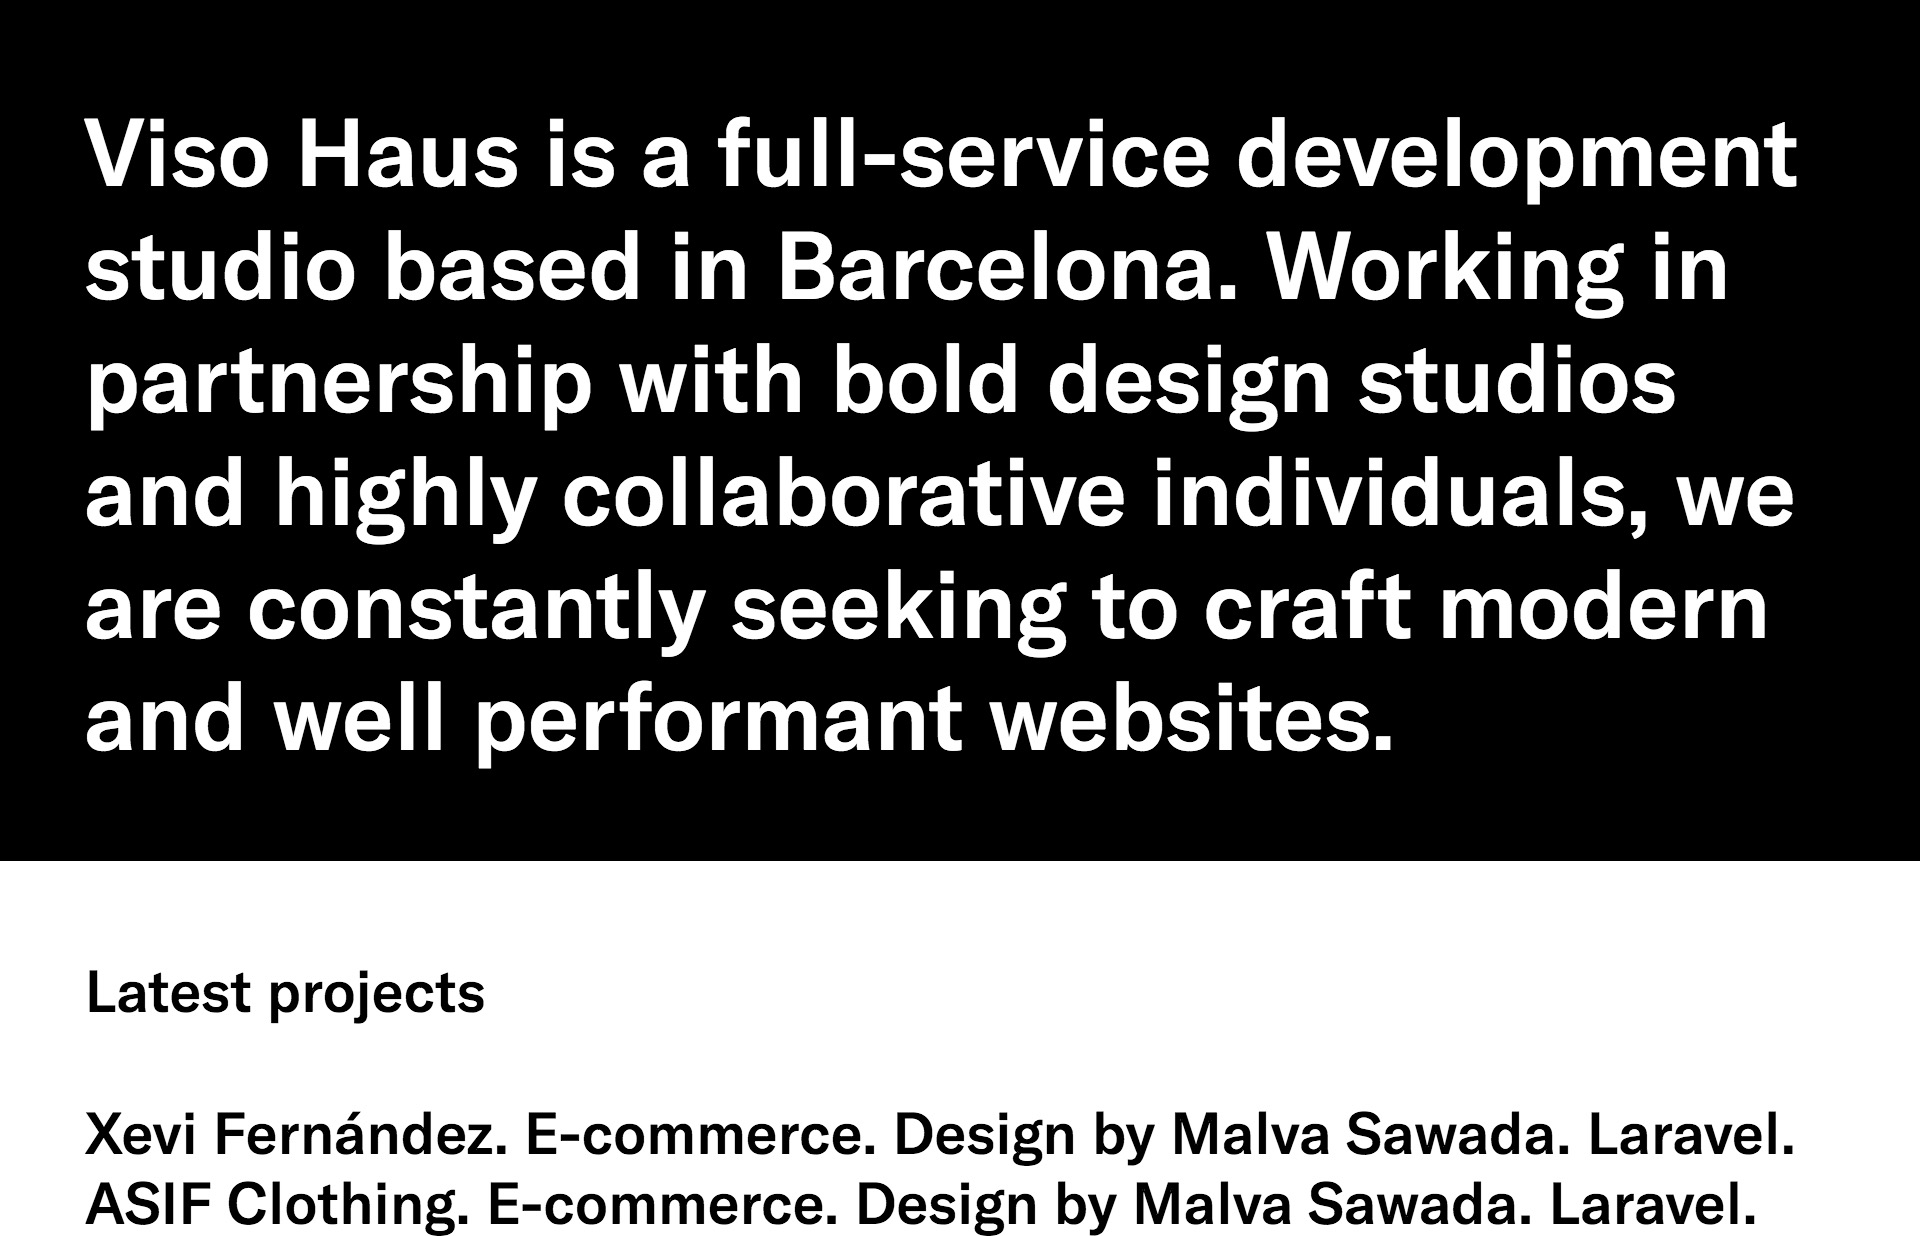 Screenshot of the website Viso Haus, featured on The Gallery, a curated collection of minimal websites